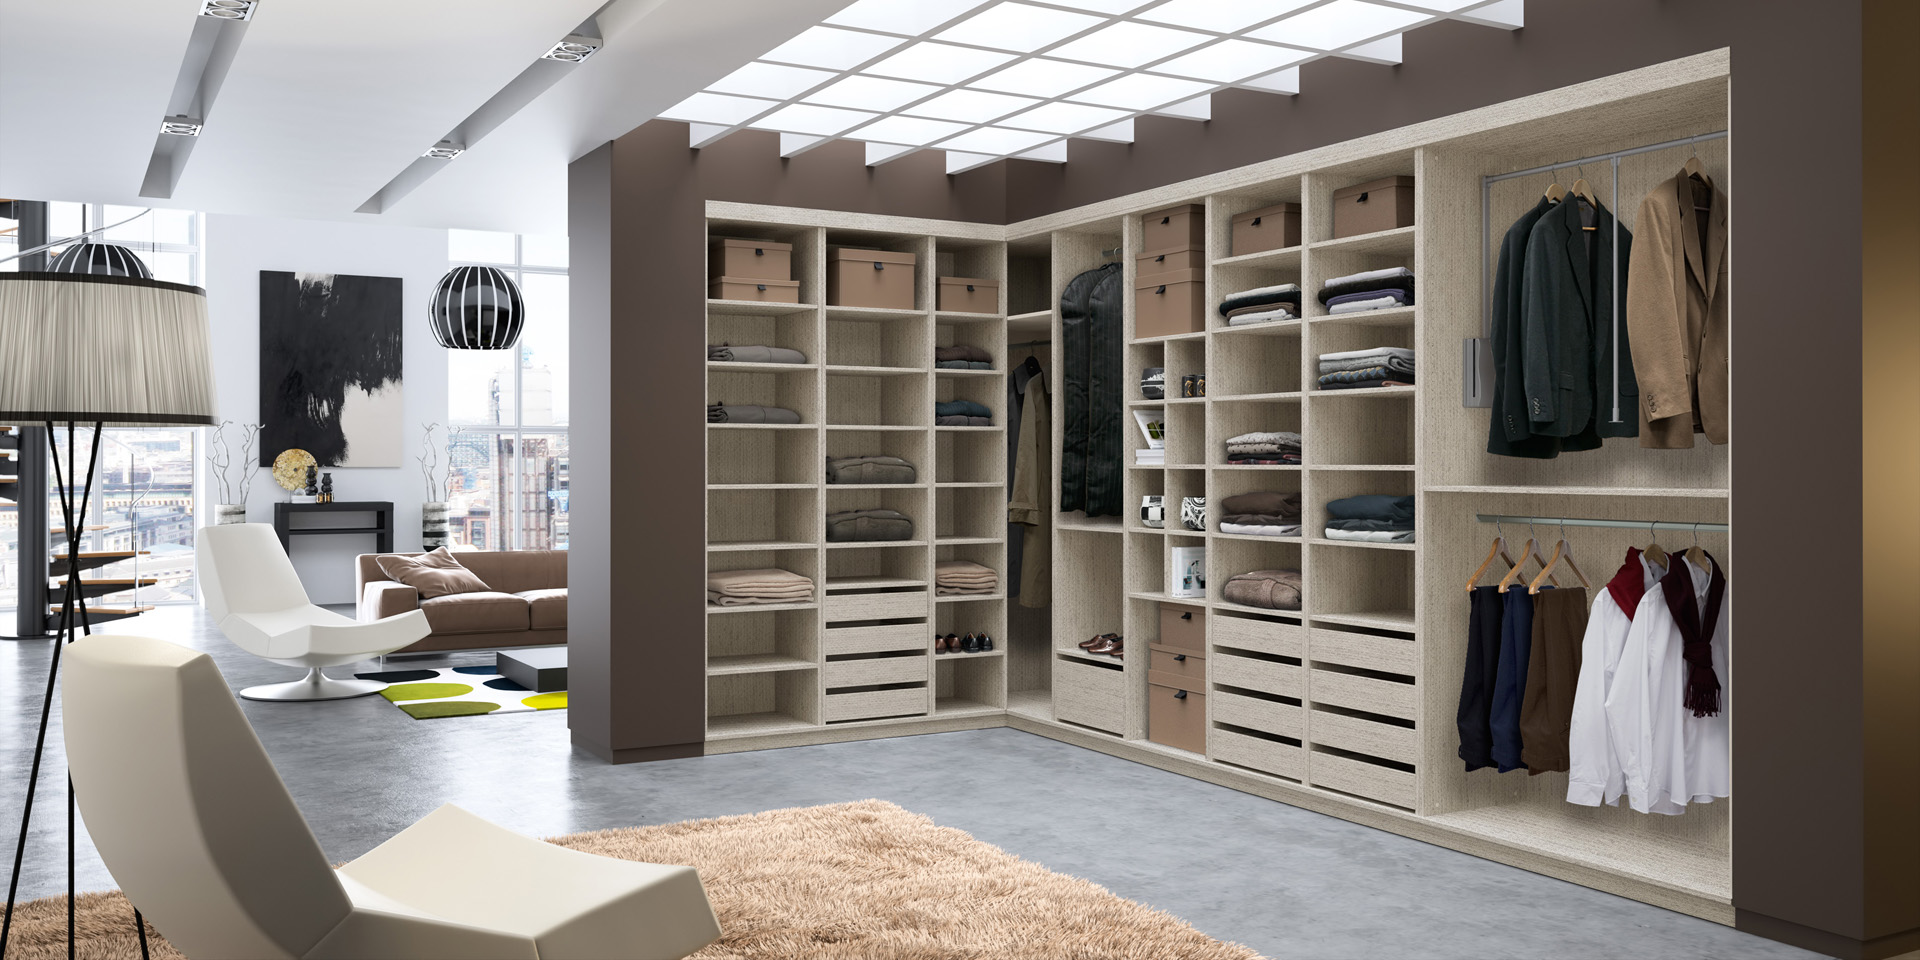 mon dressing d angle tarif tr s attractif. Black Bedroom Furniture Sets. Home Design Ideas